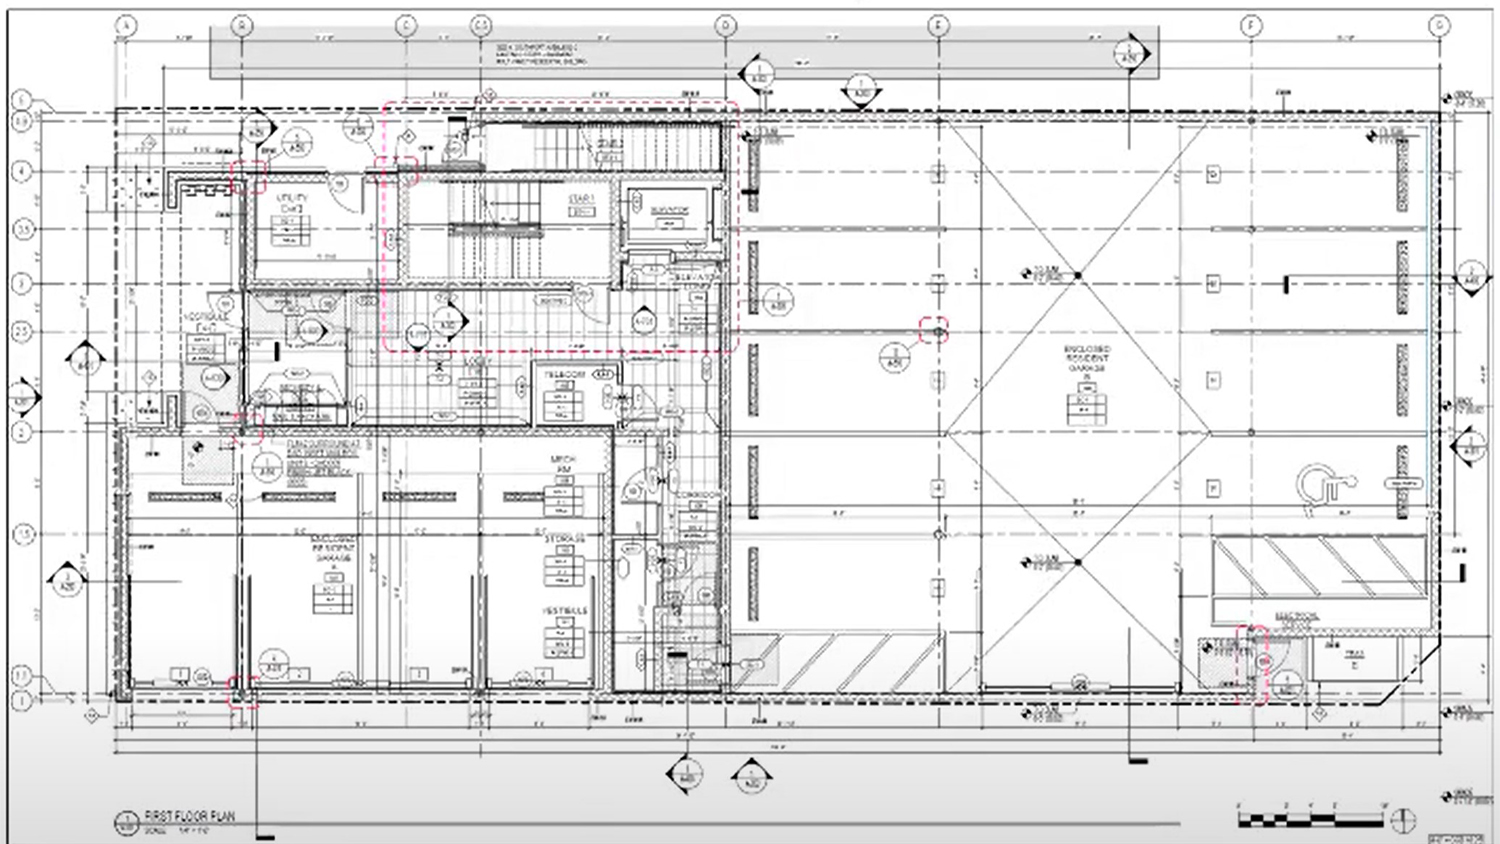 Ground Floor Plan for 3015 N Southport Avenue. Drawing by OKW Architects